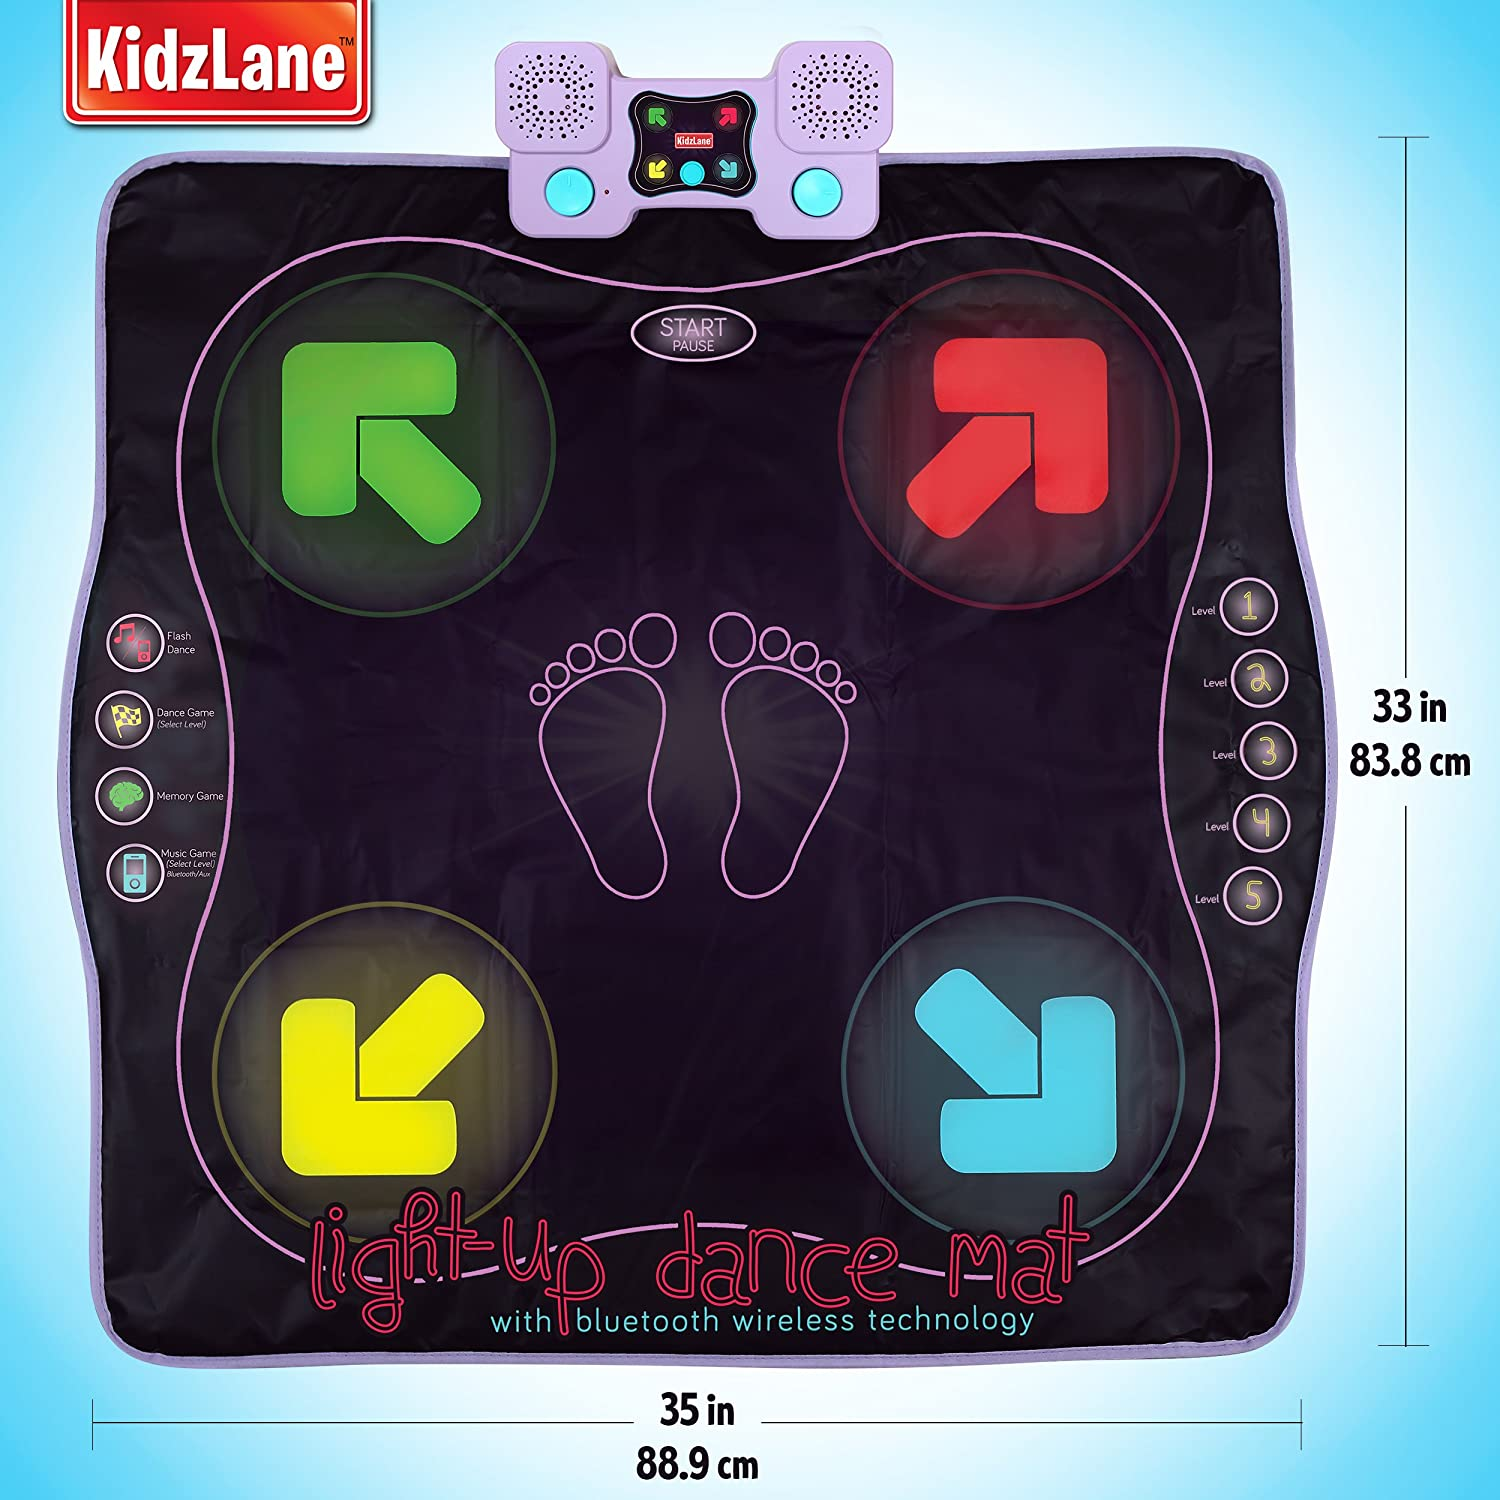 af79d8e65634 Amazon.com  Kidzlane Light Up Dance Mat - Arcade Style Dance Games with  Built in Music Tracks and Wireless Technology  Toys   Games